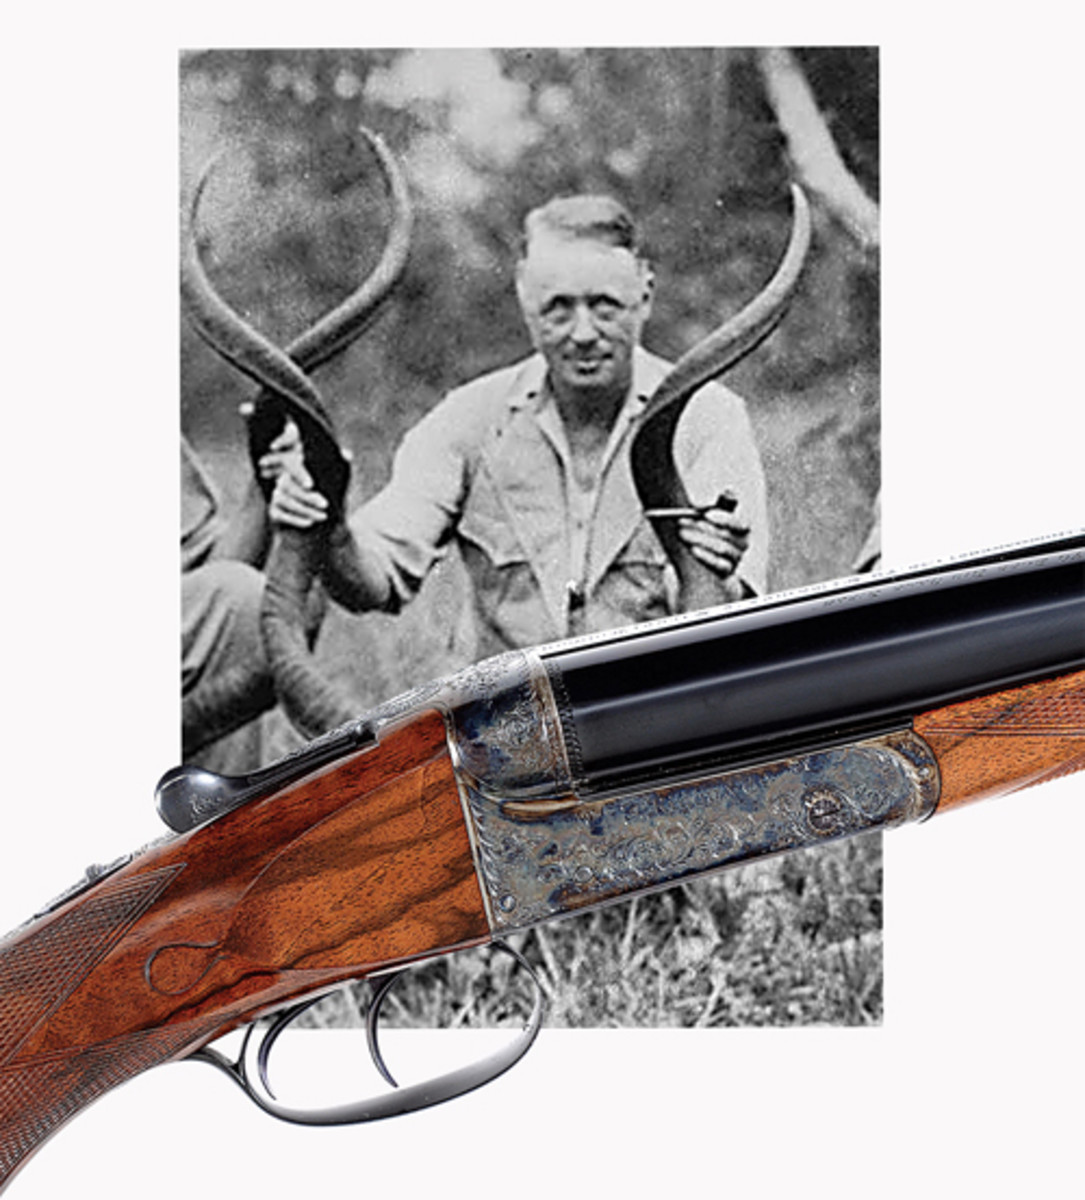 """John Rigby cal .470 Boxlock Ejector Double Rifle owned by Philip H. Percival, the """"Dean of African Professional Hunters"""" who inspired Hemingway's character """"Pop"""" in """"Green Hills of Africa;"""" estimated at $75,000-150,000, sold for $80,500."""